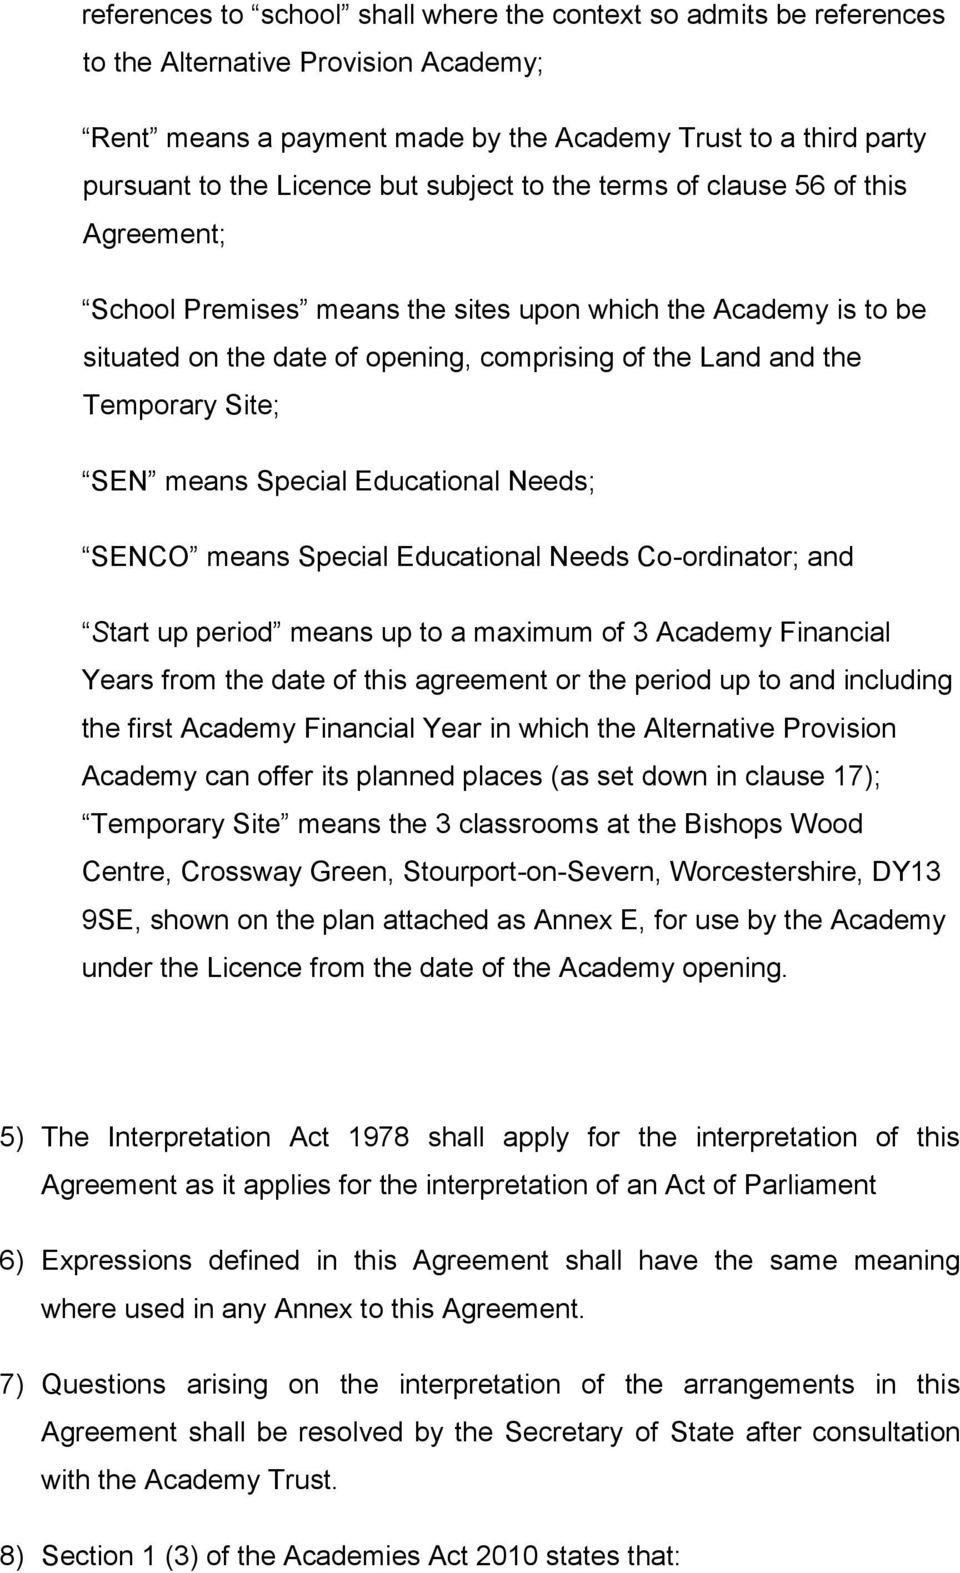 SEN means Special Educational Needs; SENCO means Special Educational Needs Co-ordinator; and Start up period means up to a maximum of 3 Academy Financial Years from the date of this agreement or the